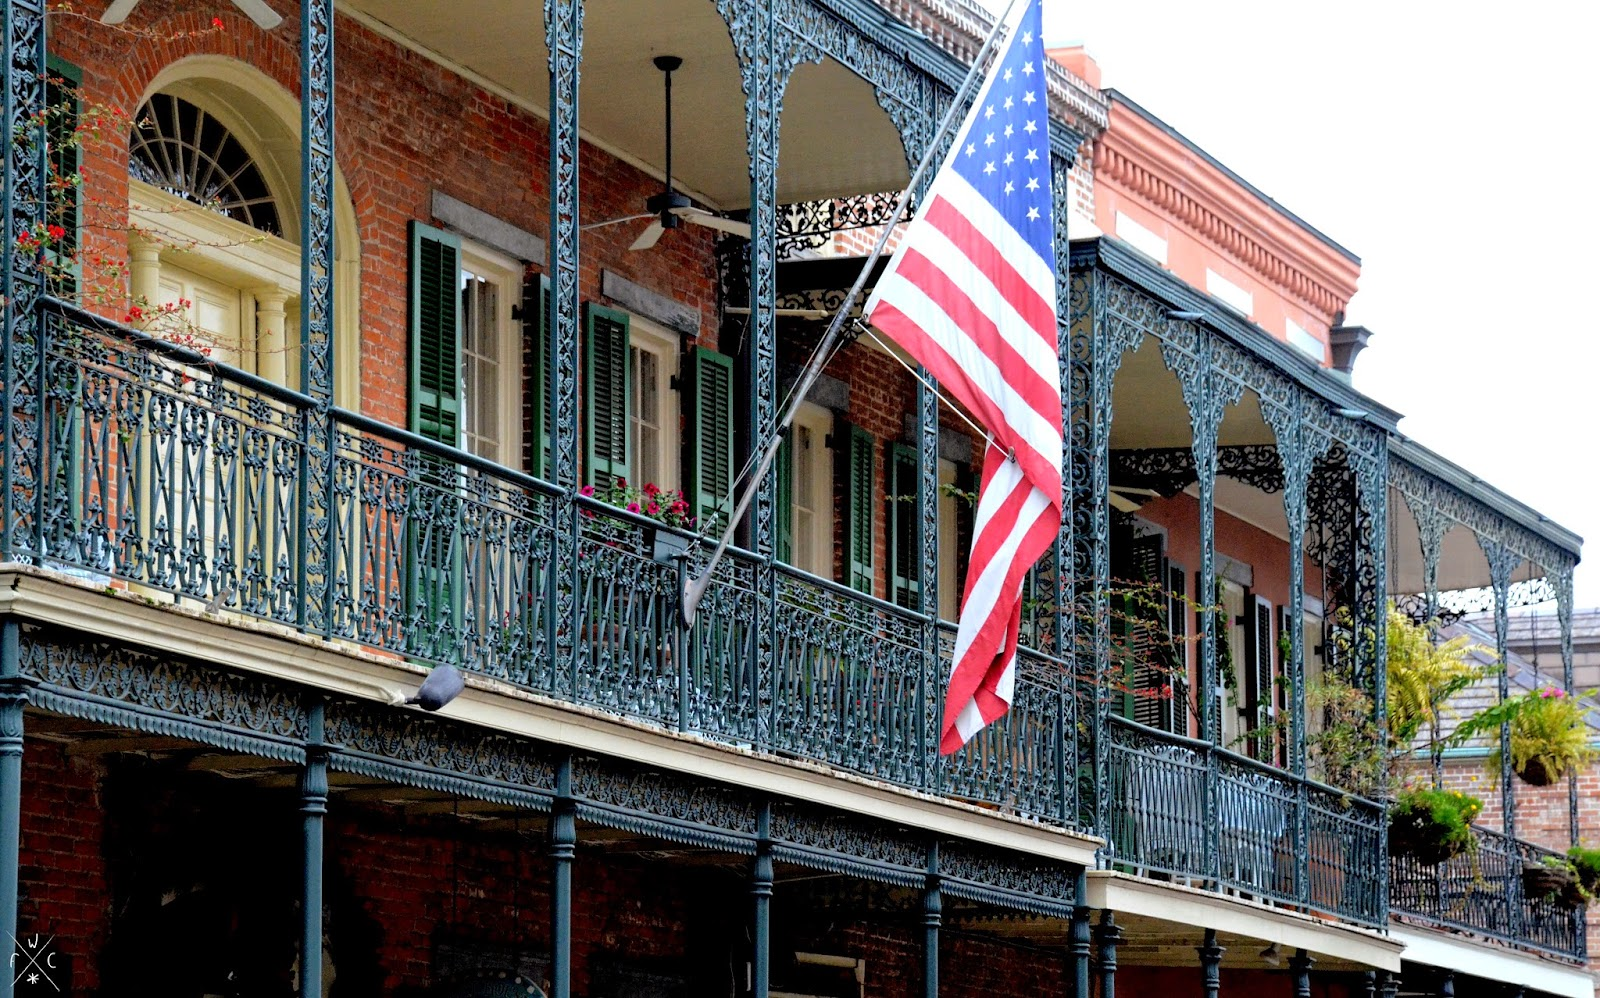 French Quarter - La Nouvelle-Orléans, Louisiane, USA